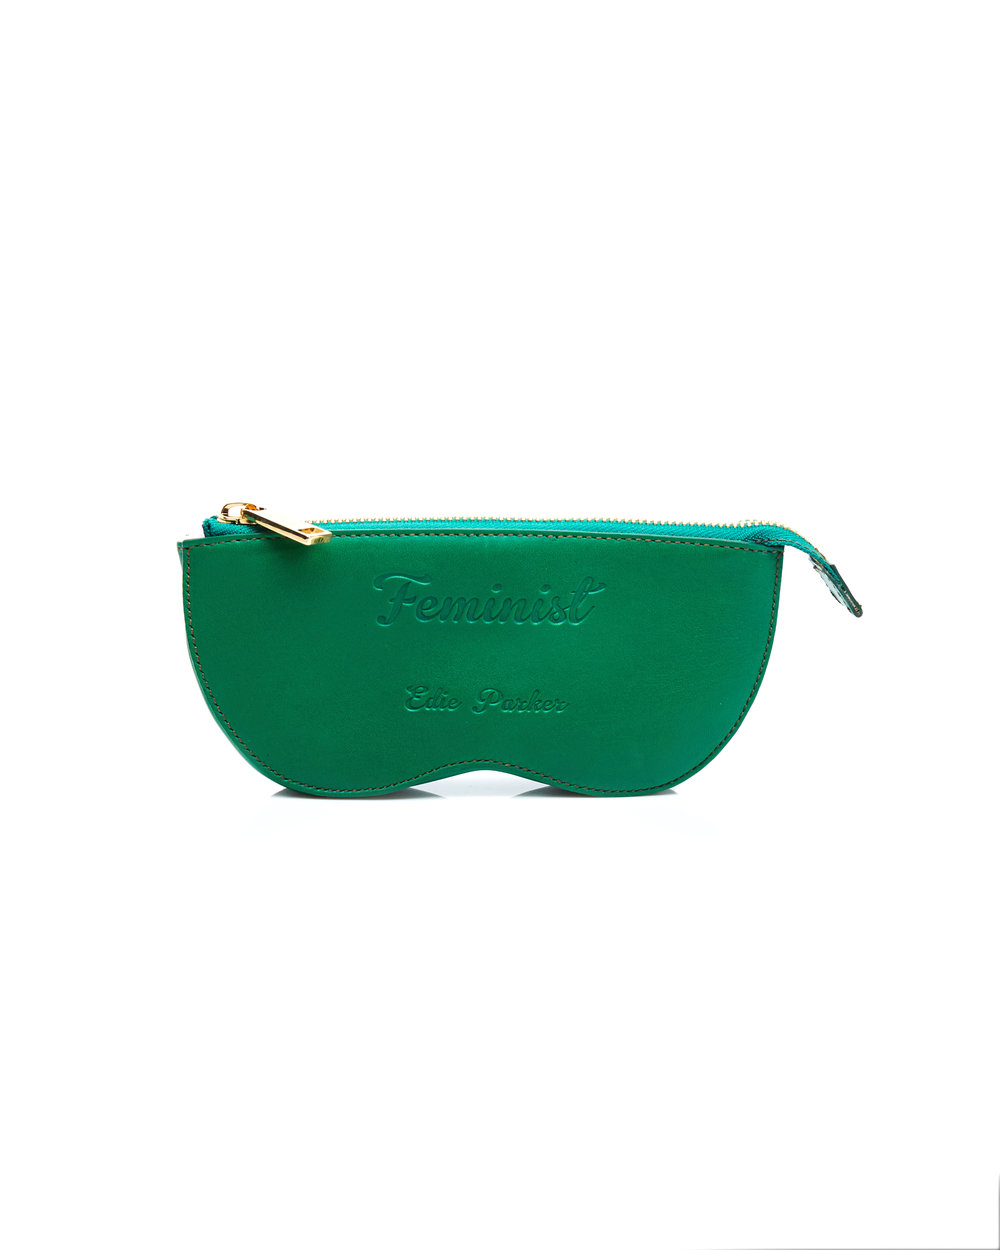 Edie Parker – Eye Glass Case, Green